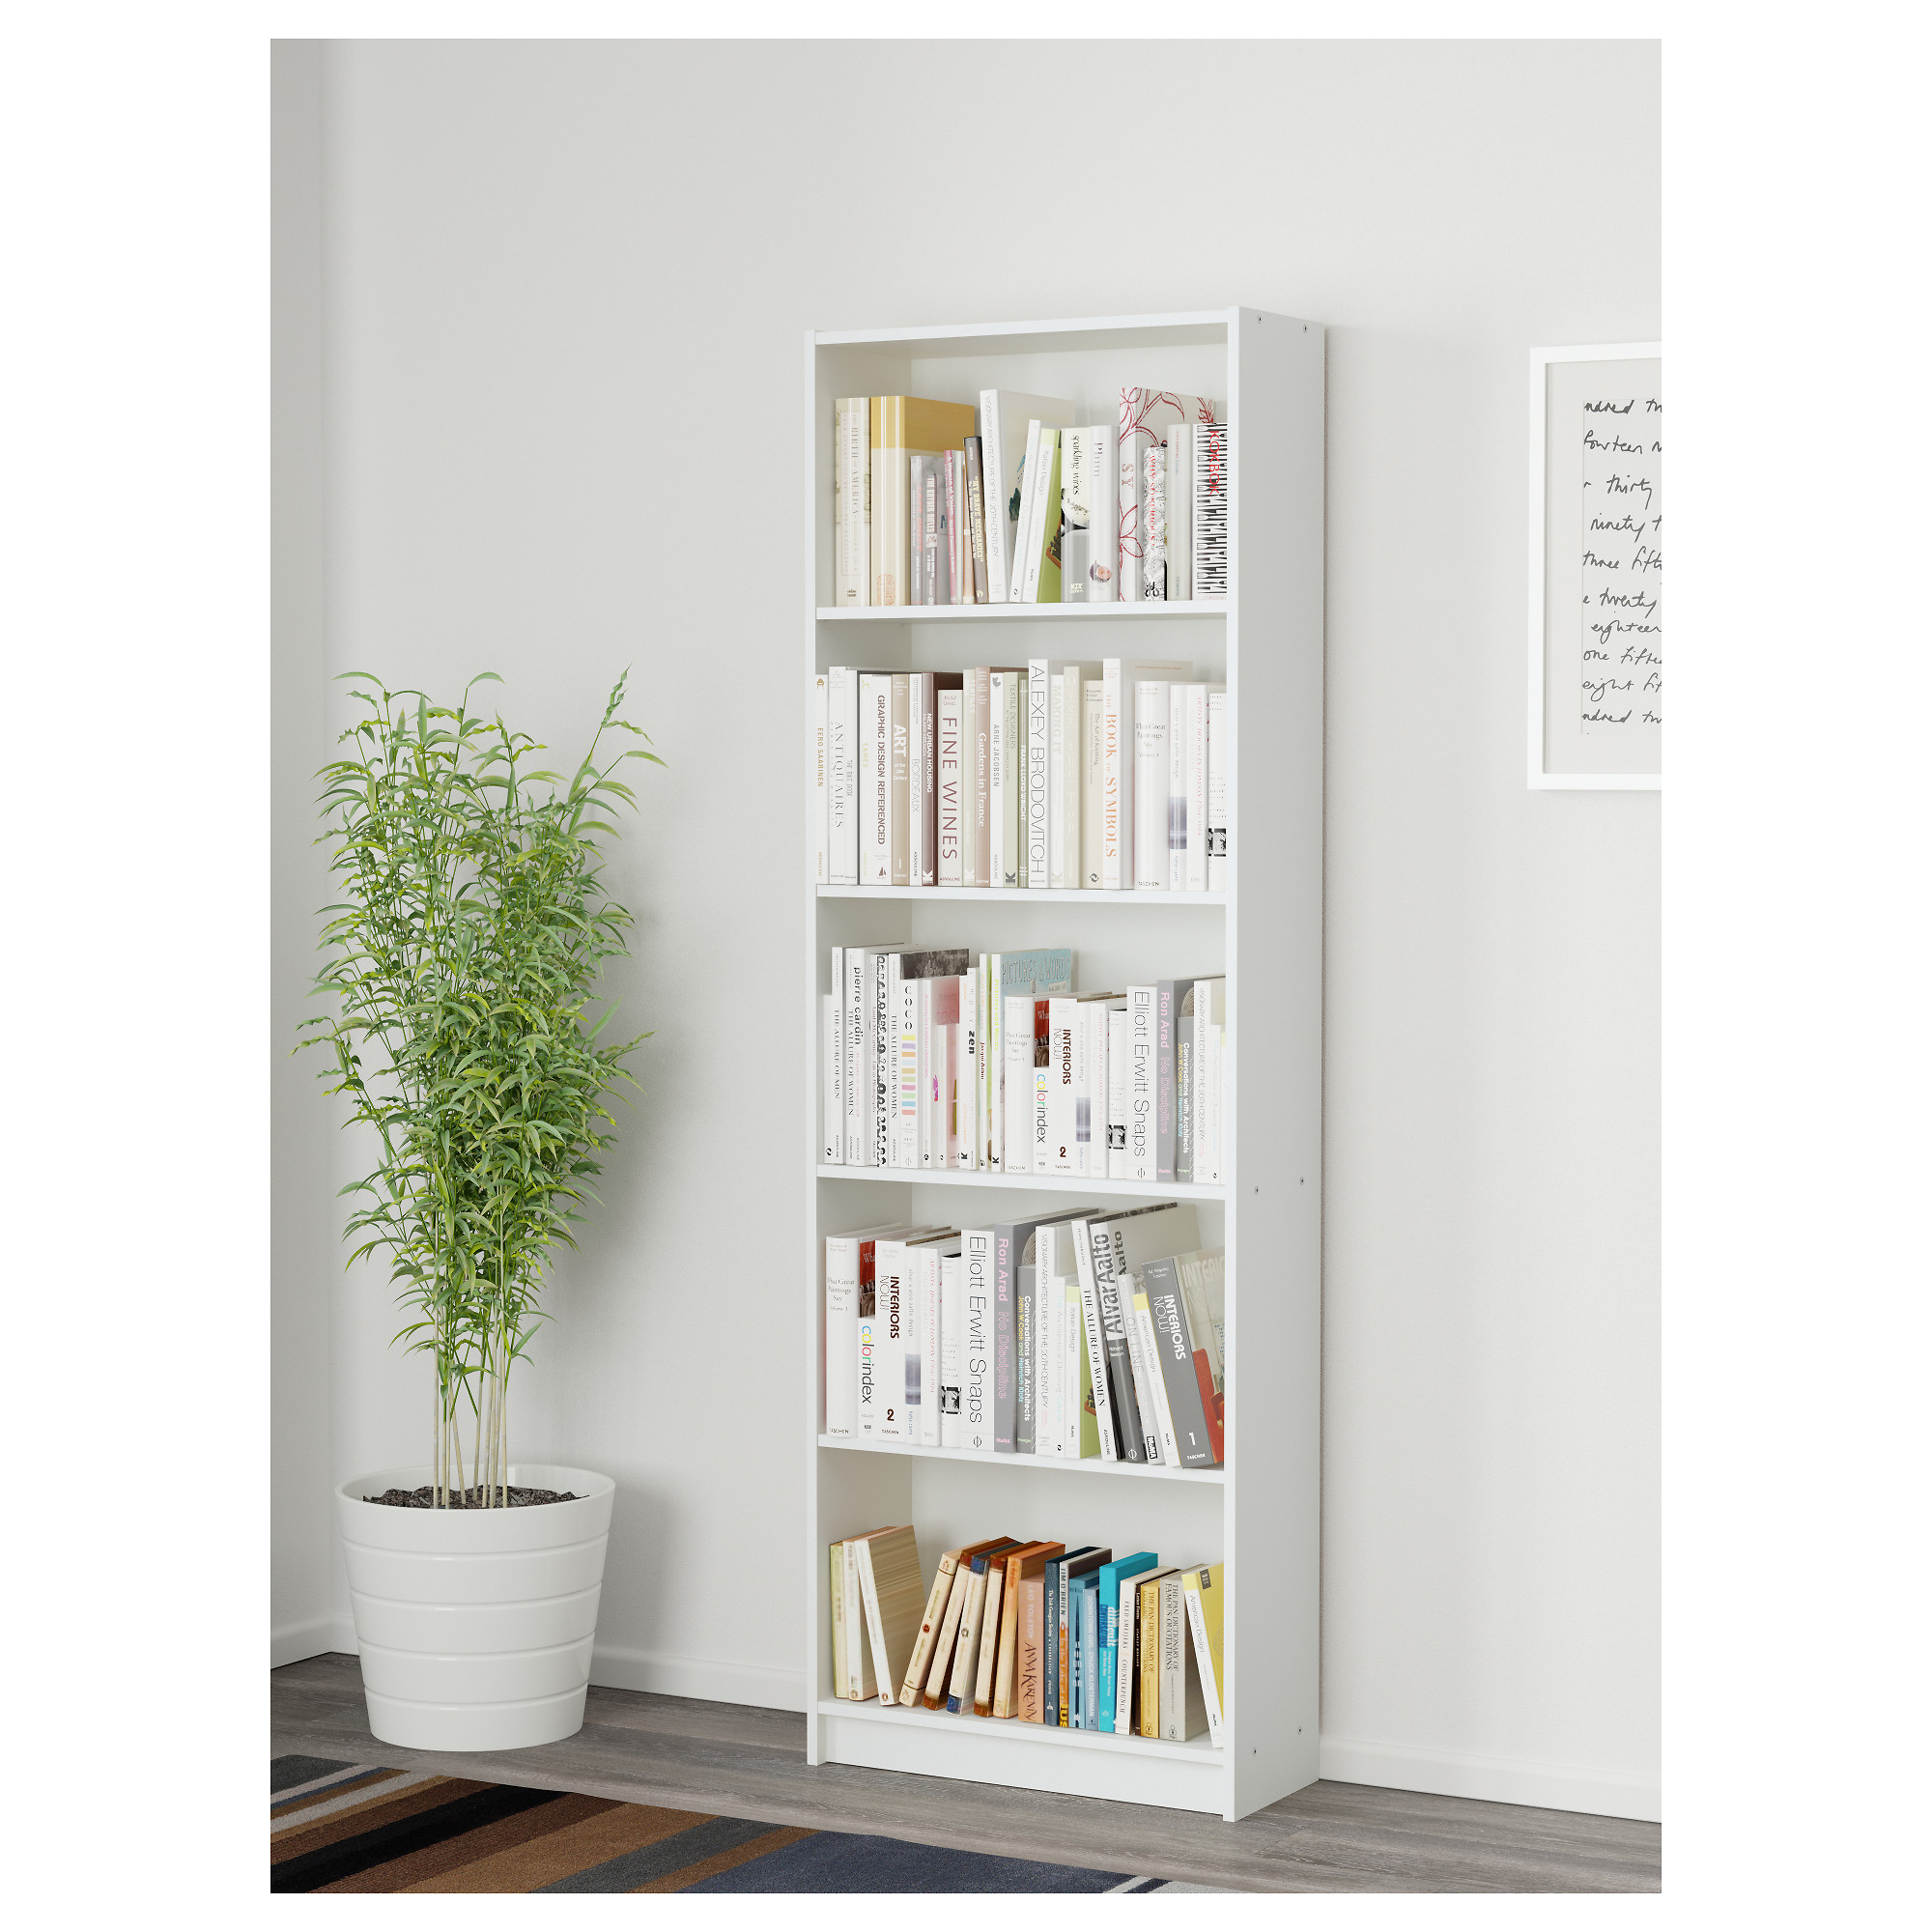 delta store children and shelf white container outlet pin bookshelf grey ladder